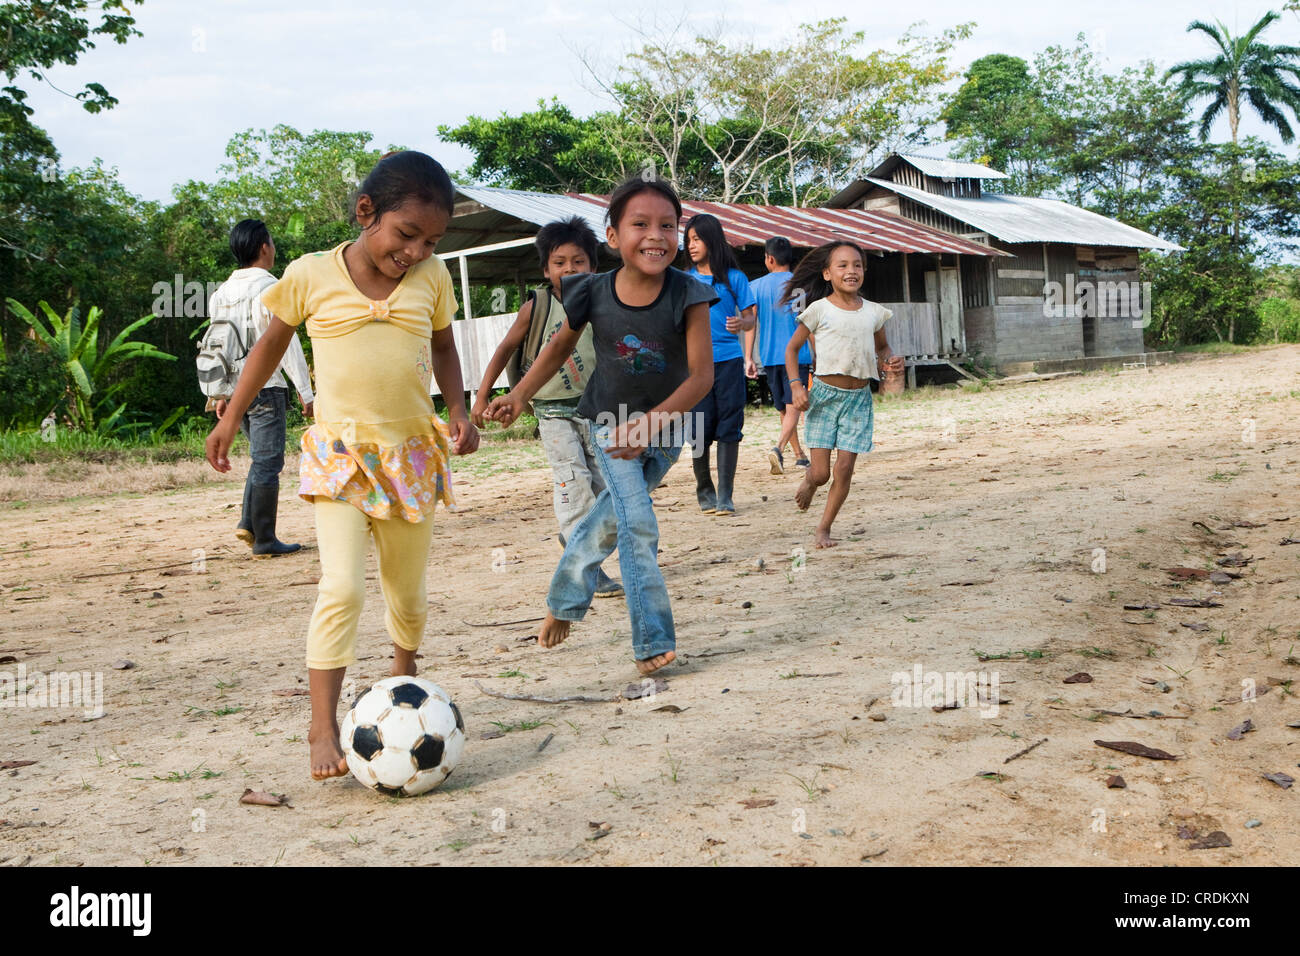 School children playing soccer in the schoolyard before classes start in a village with no road access in the rainforest - Stock Image